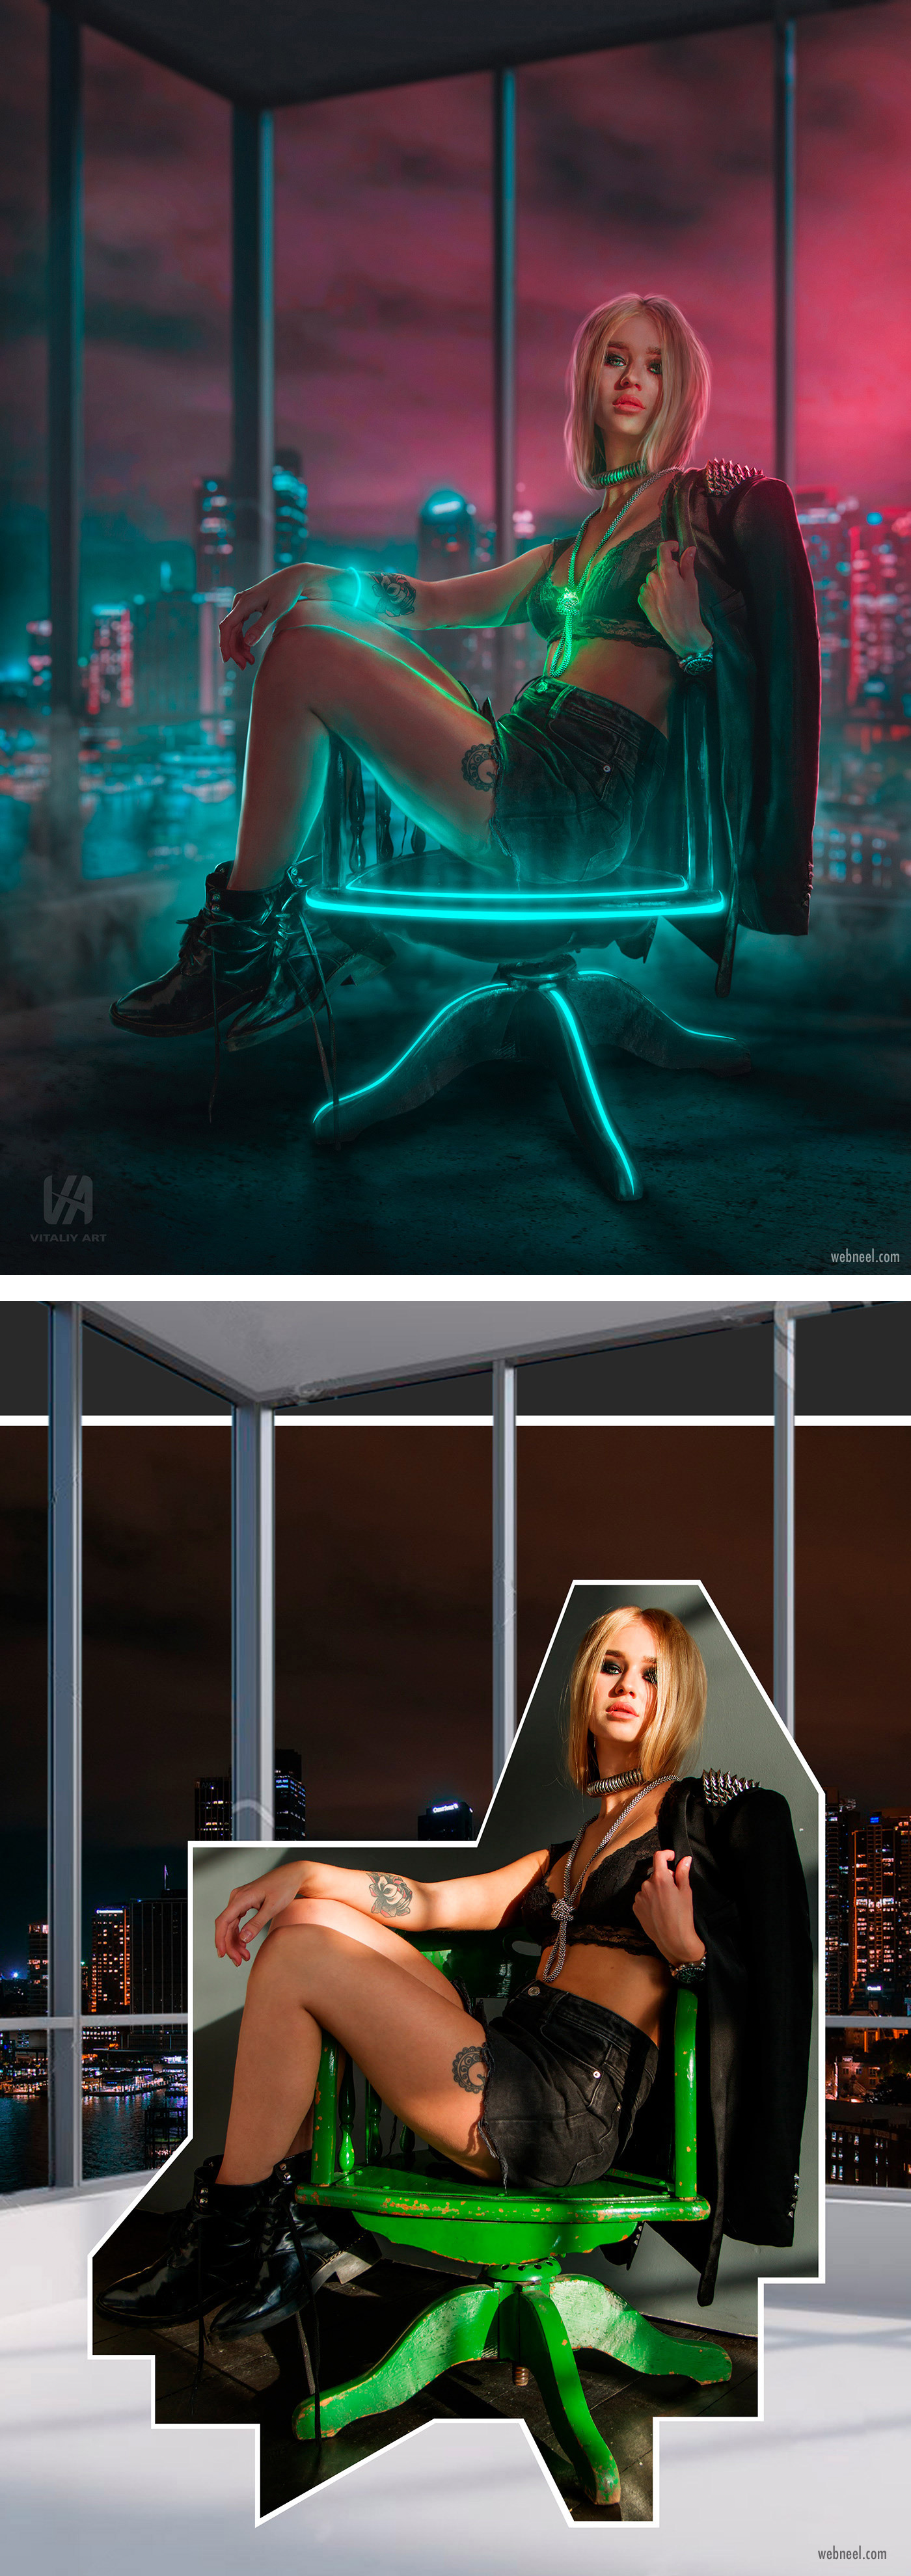 photo retouching after before futuristic neon sci fi girl city by vitaliy art